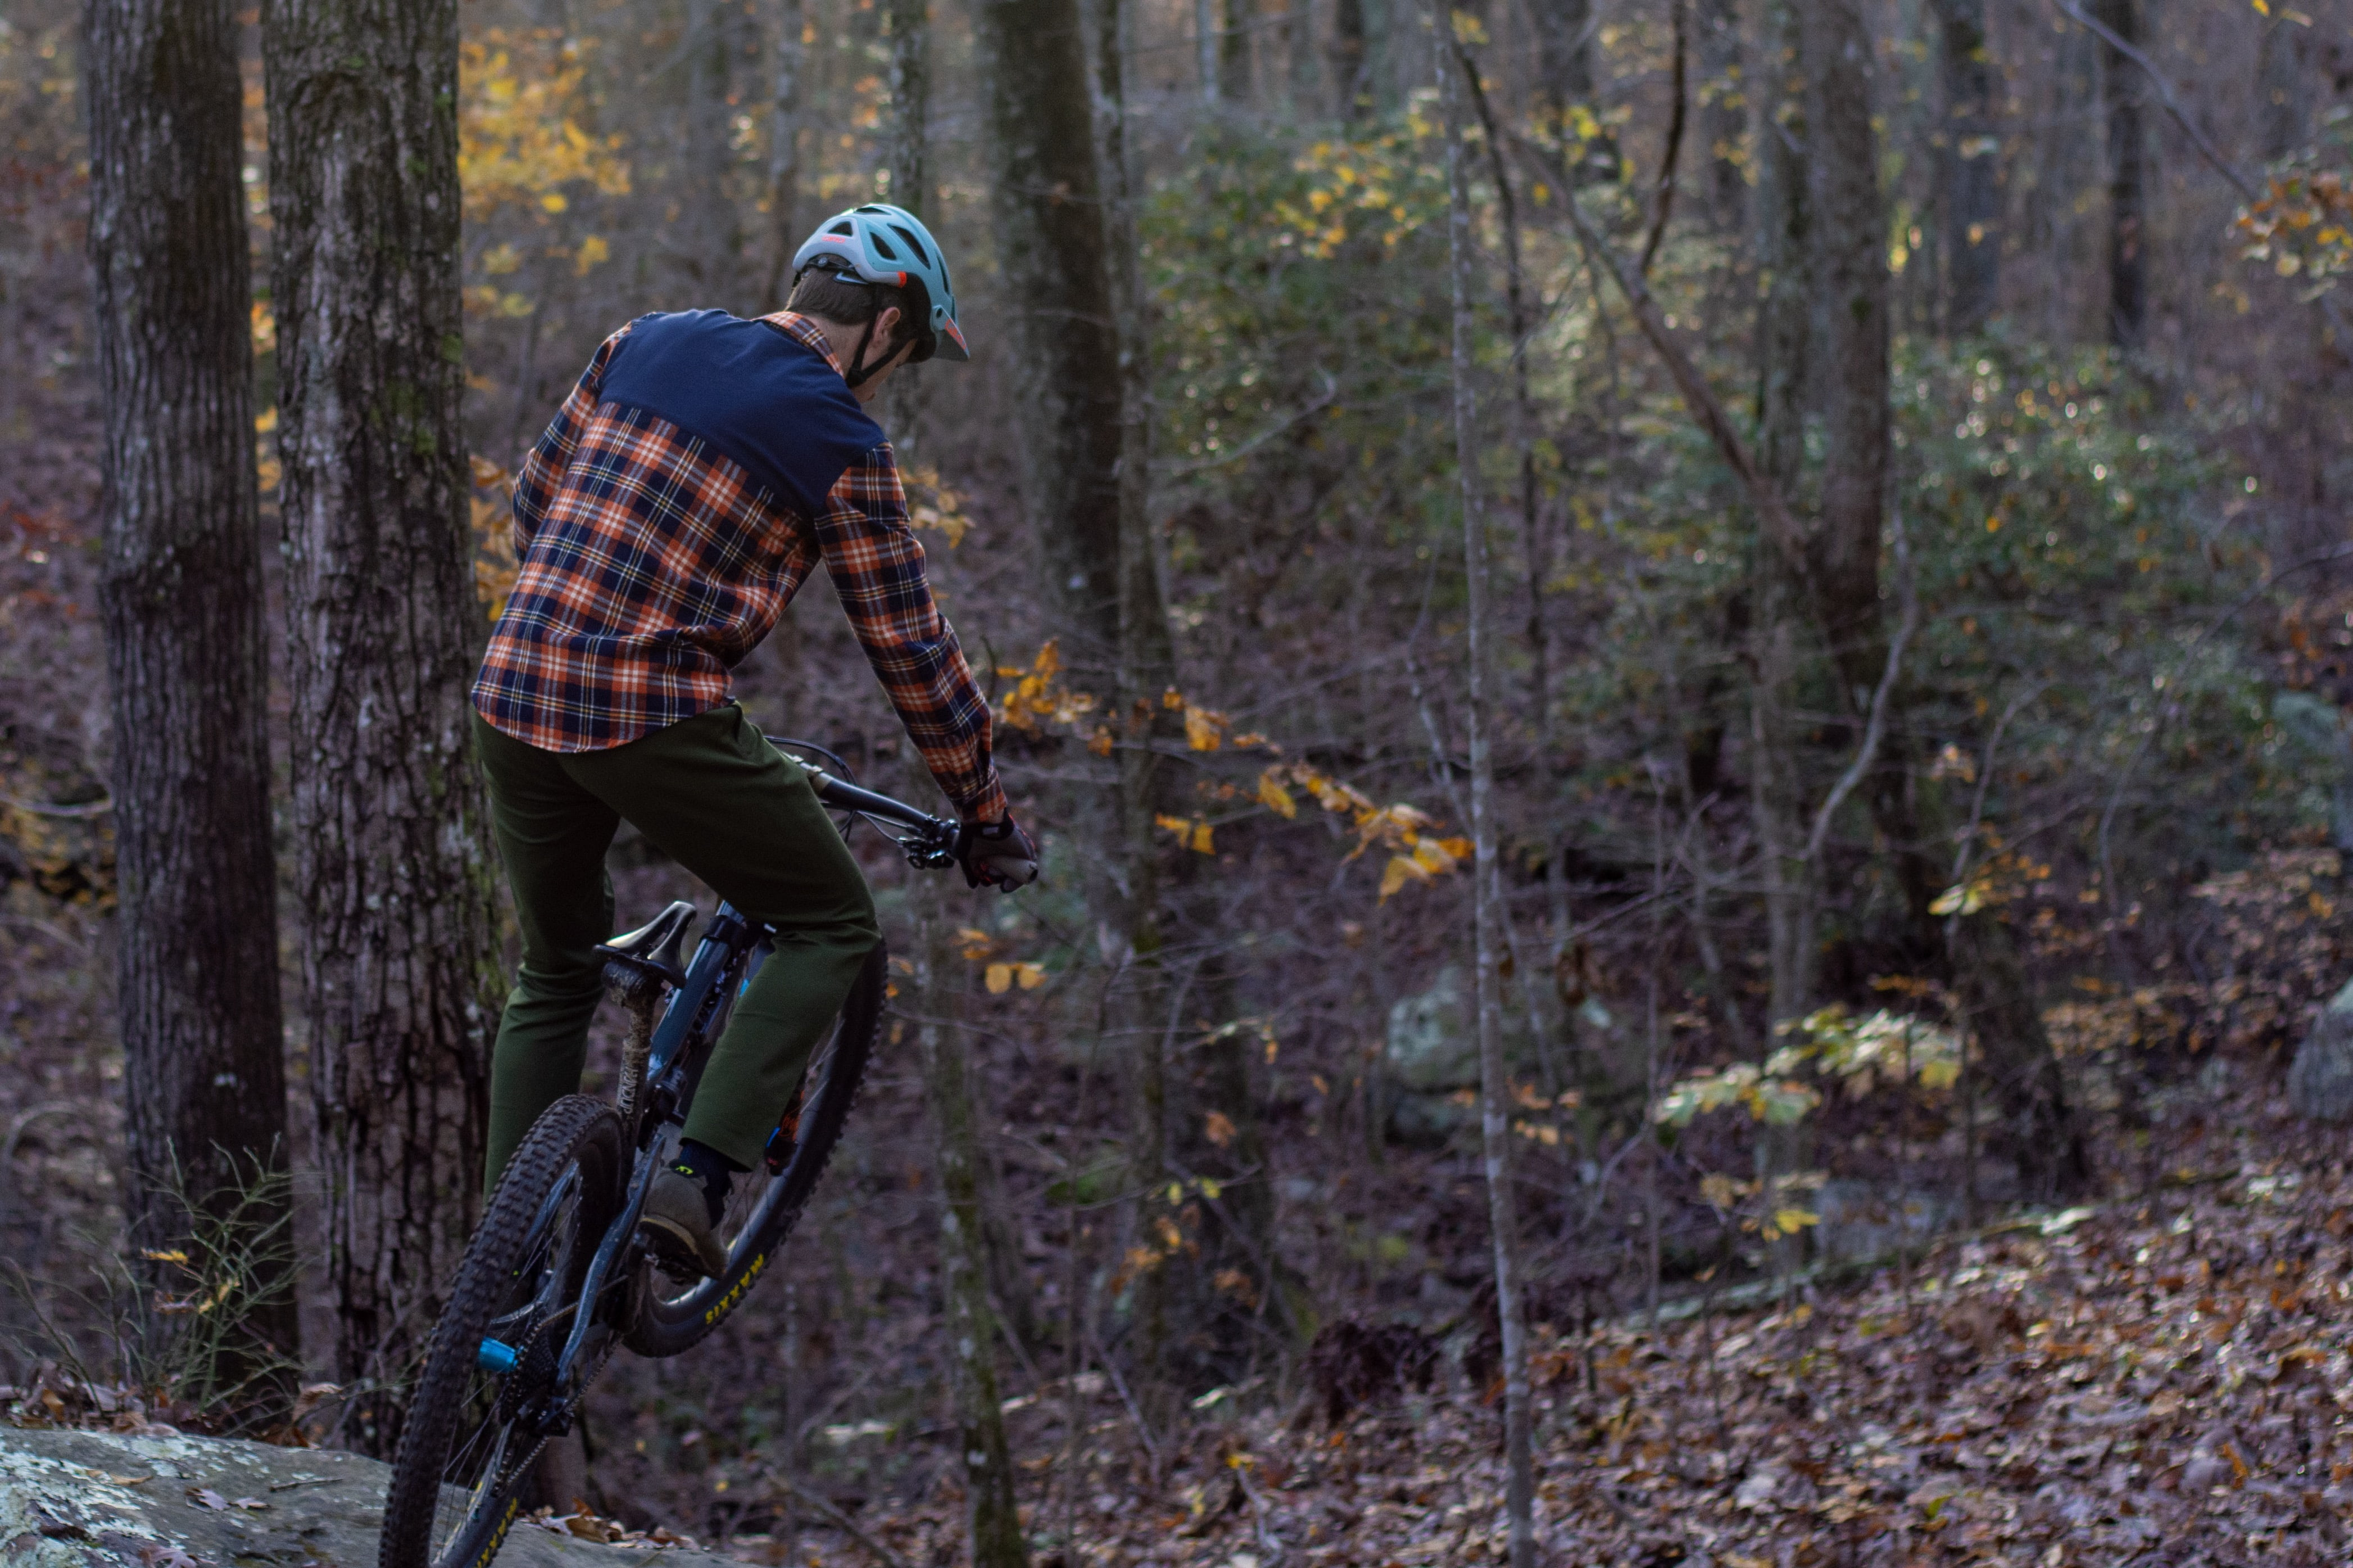 Handup Adds No-nonsense Riding Flannels and Pants